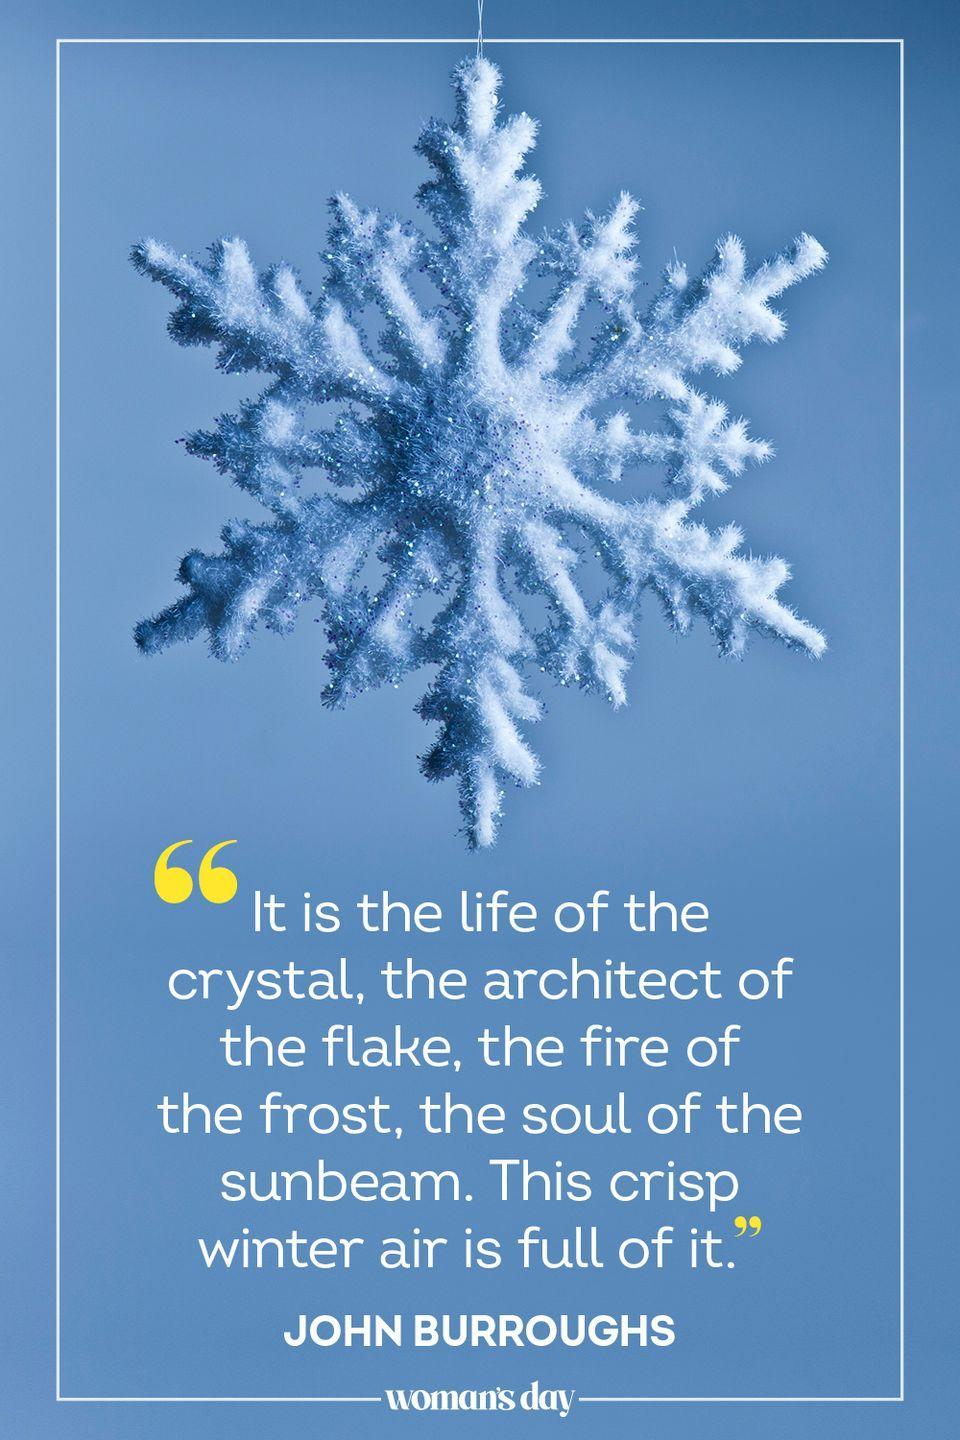 "<p>""It is the life of the crystal, the architect of the flake, the fire of the frost, the soul of the sunbeam. This crisp <a href=""https://www.brainyquote.com/quotes/john_burroughs_760772"" rel=""nofollow noopener"" target=""_blank"" data-ylk=""slk:winter air"" class=""link rapid-noclick-resp"">winter air</a> is full of it."" — John Burroughs</p>"